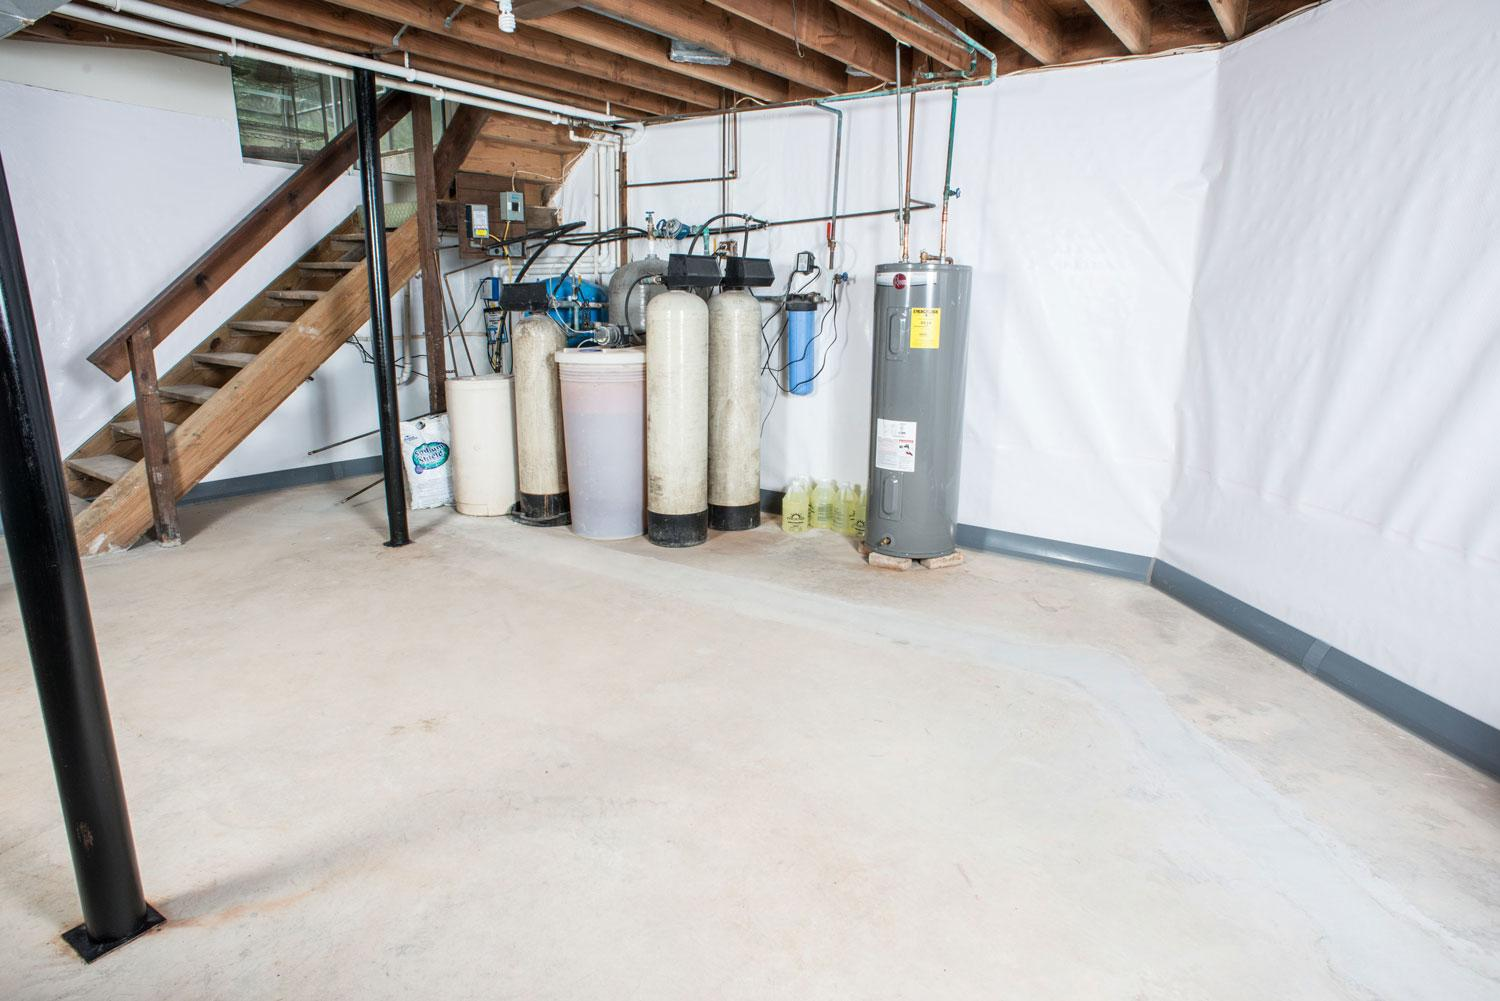 Dry basement with waterproofing system installed